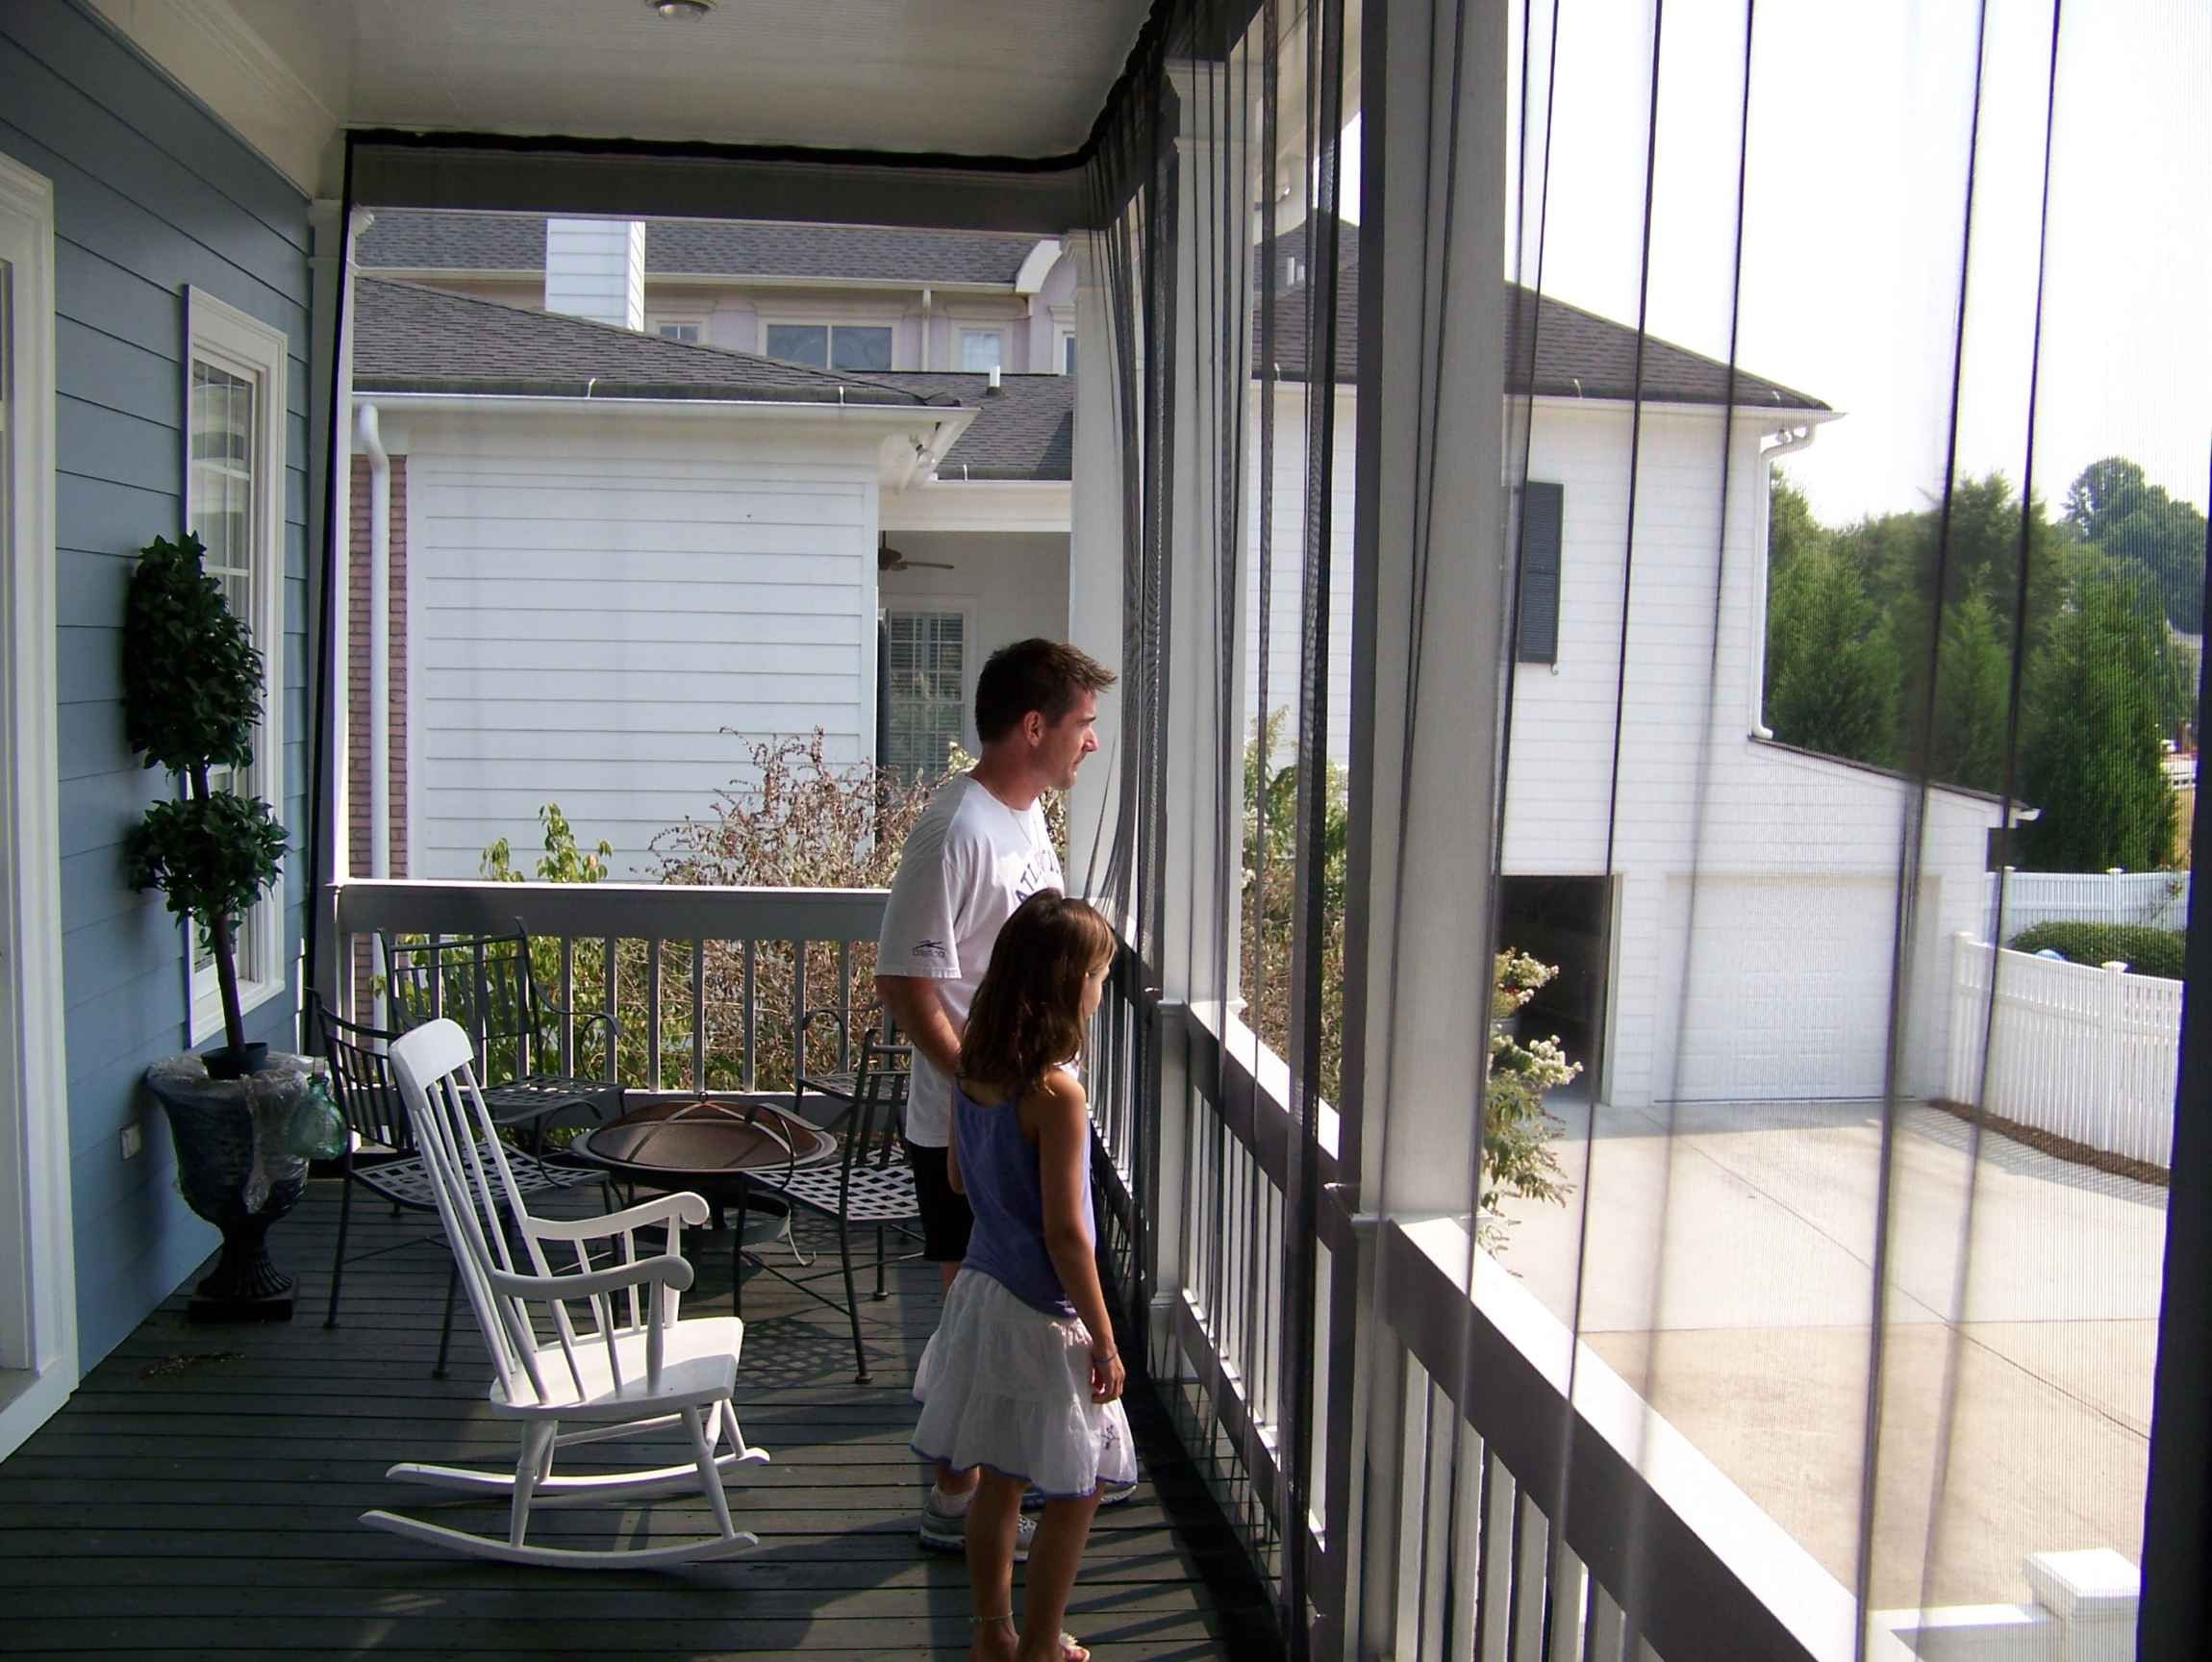 Mosquito Netting Mesh Curtains For The Balcony Want For The pertaining to measurements 2300 X 1728